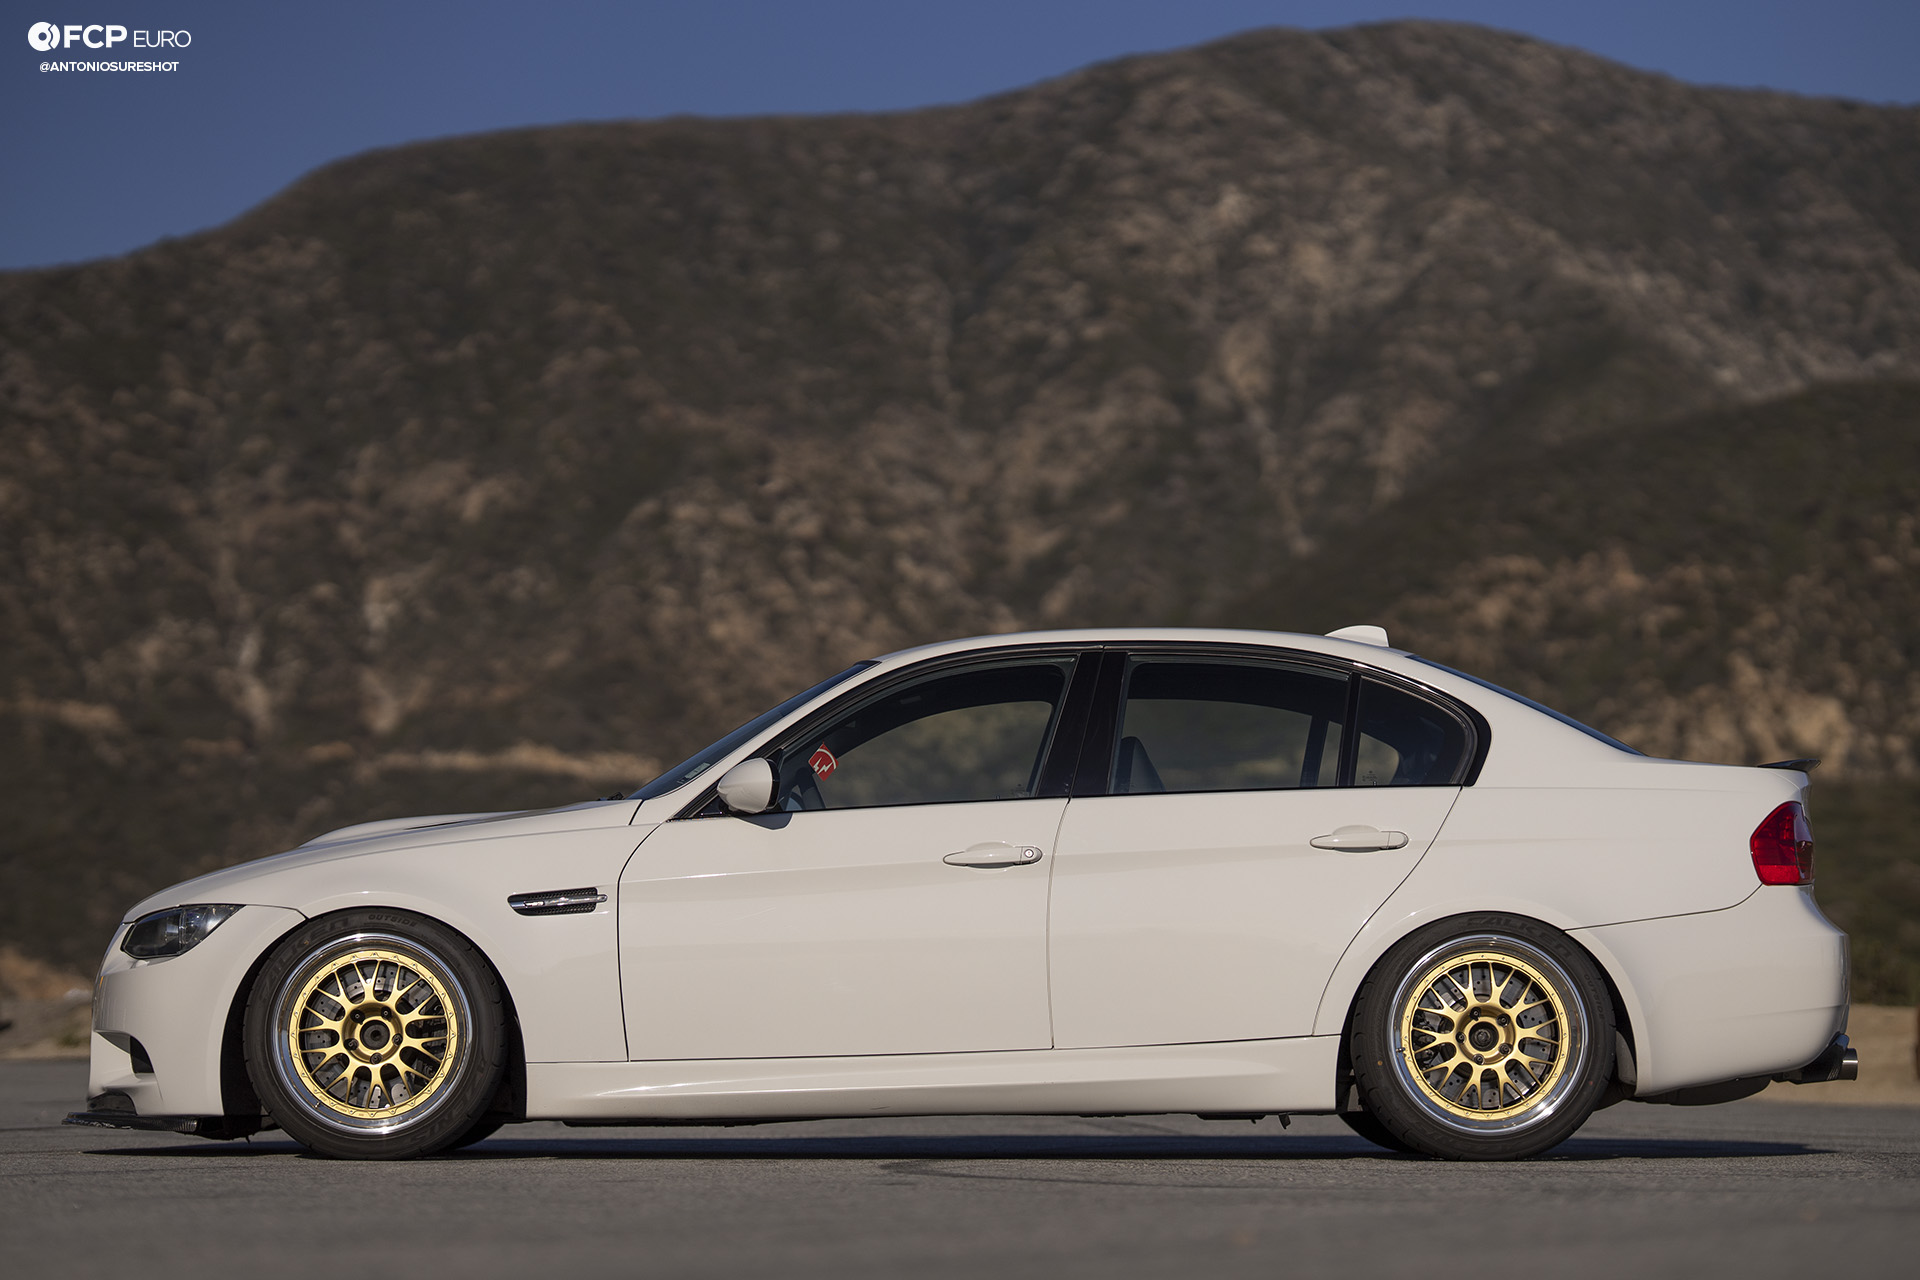 Six Speed S65 With A Slicktop Bmw E90 M3